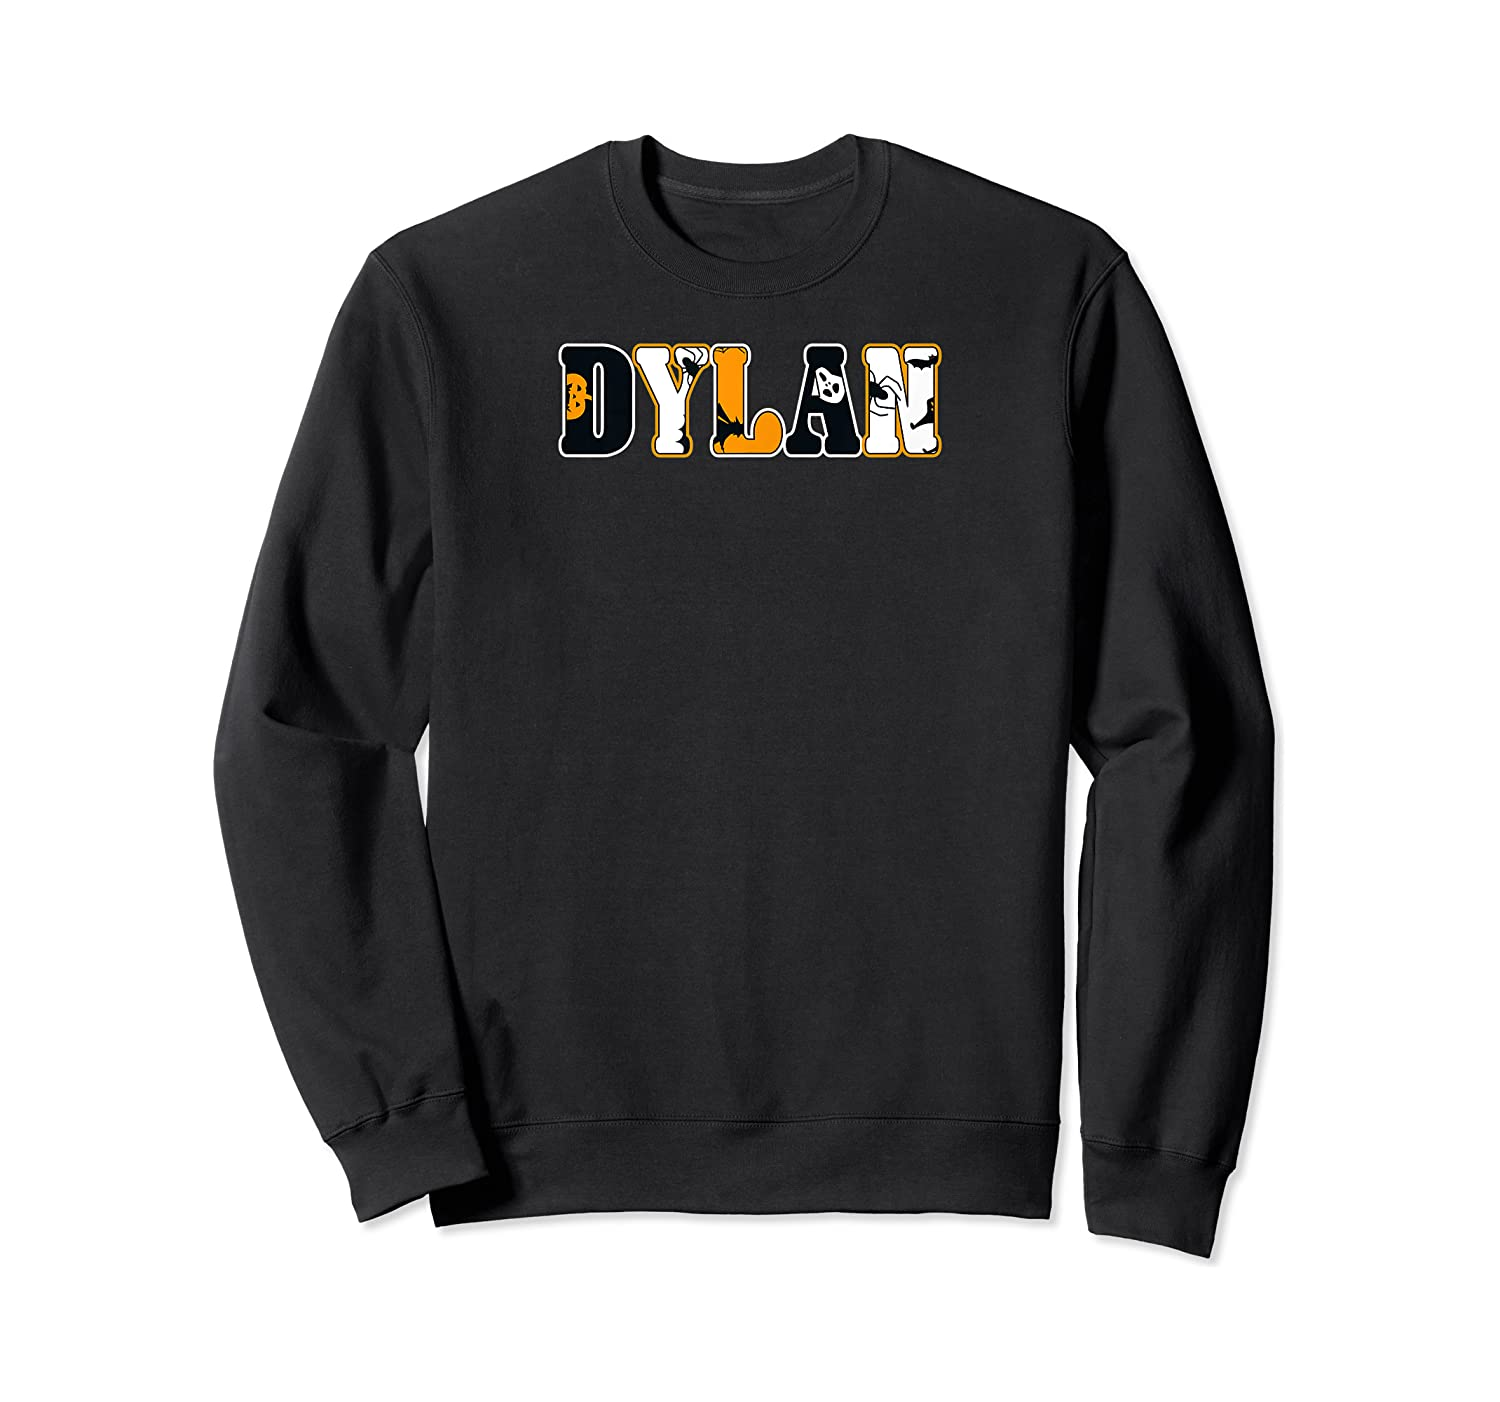 Dylan Spooky Name Halloween Gift Shirts Crewneck Sweater